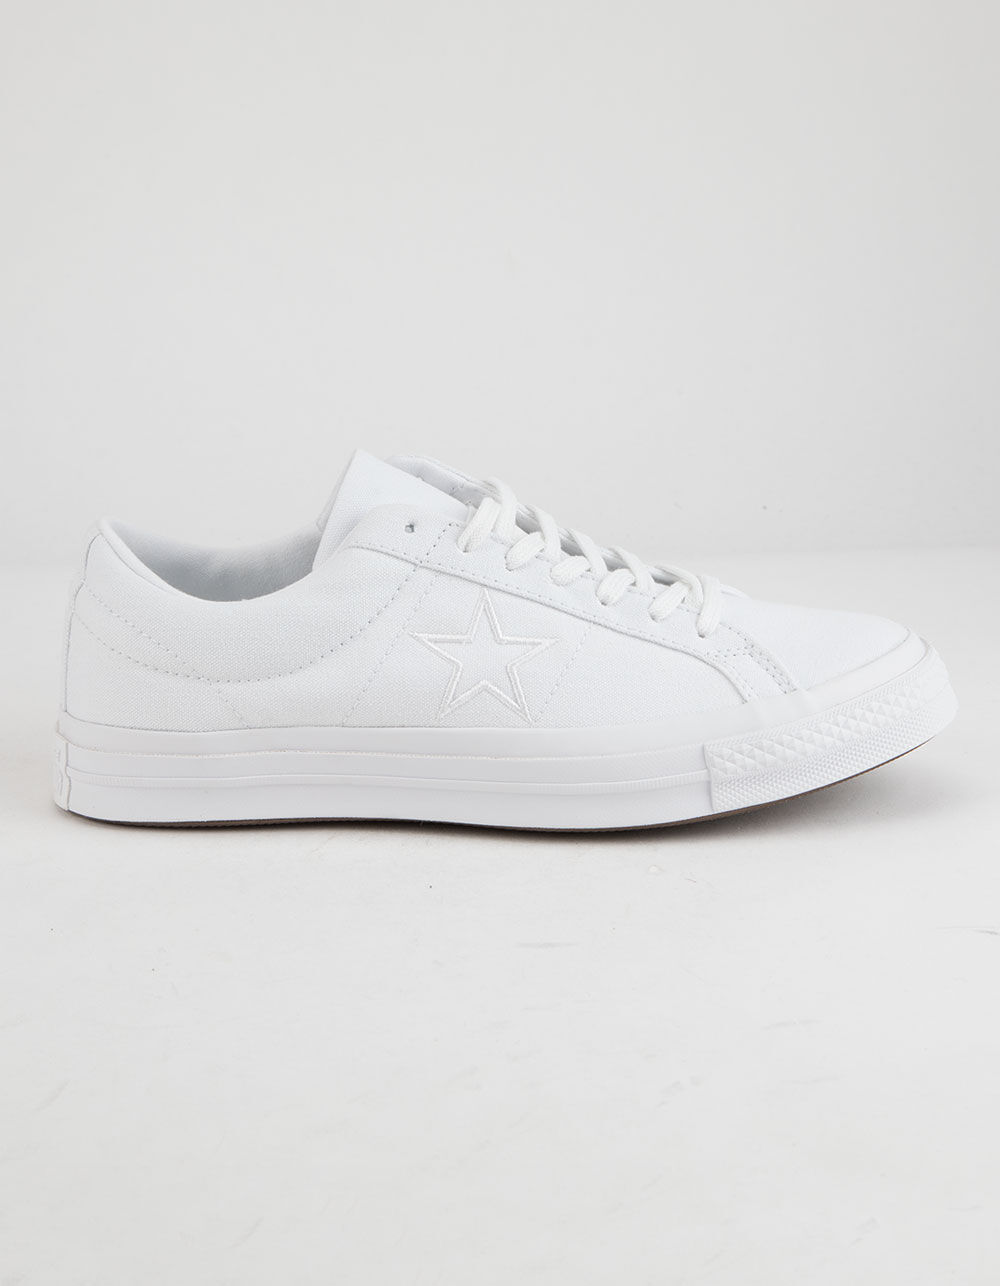 CONVERSE ONE STAR OX WHITE LOW TOP SHOES